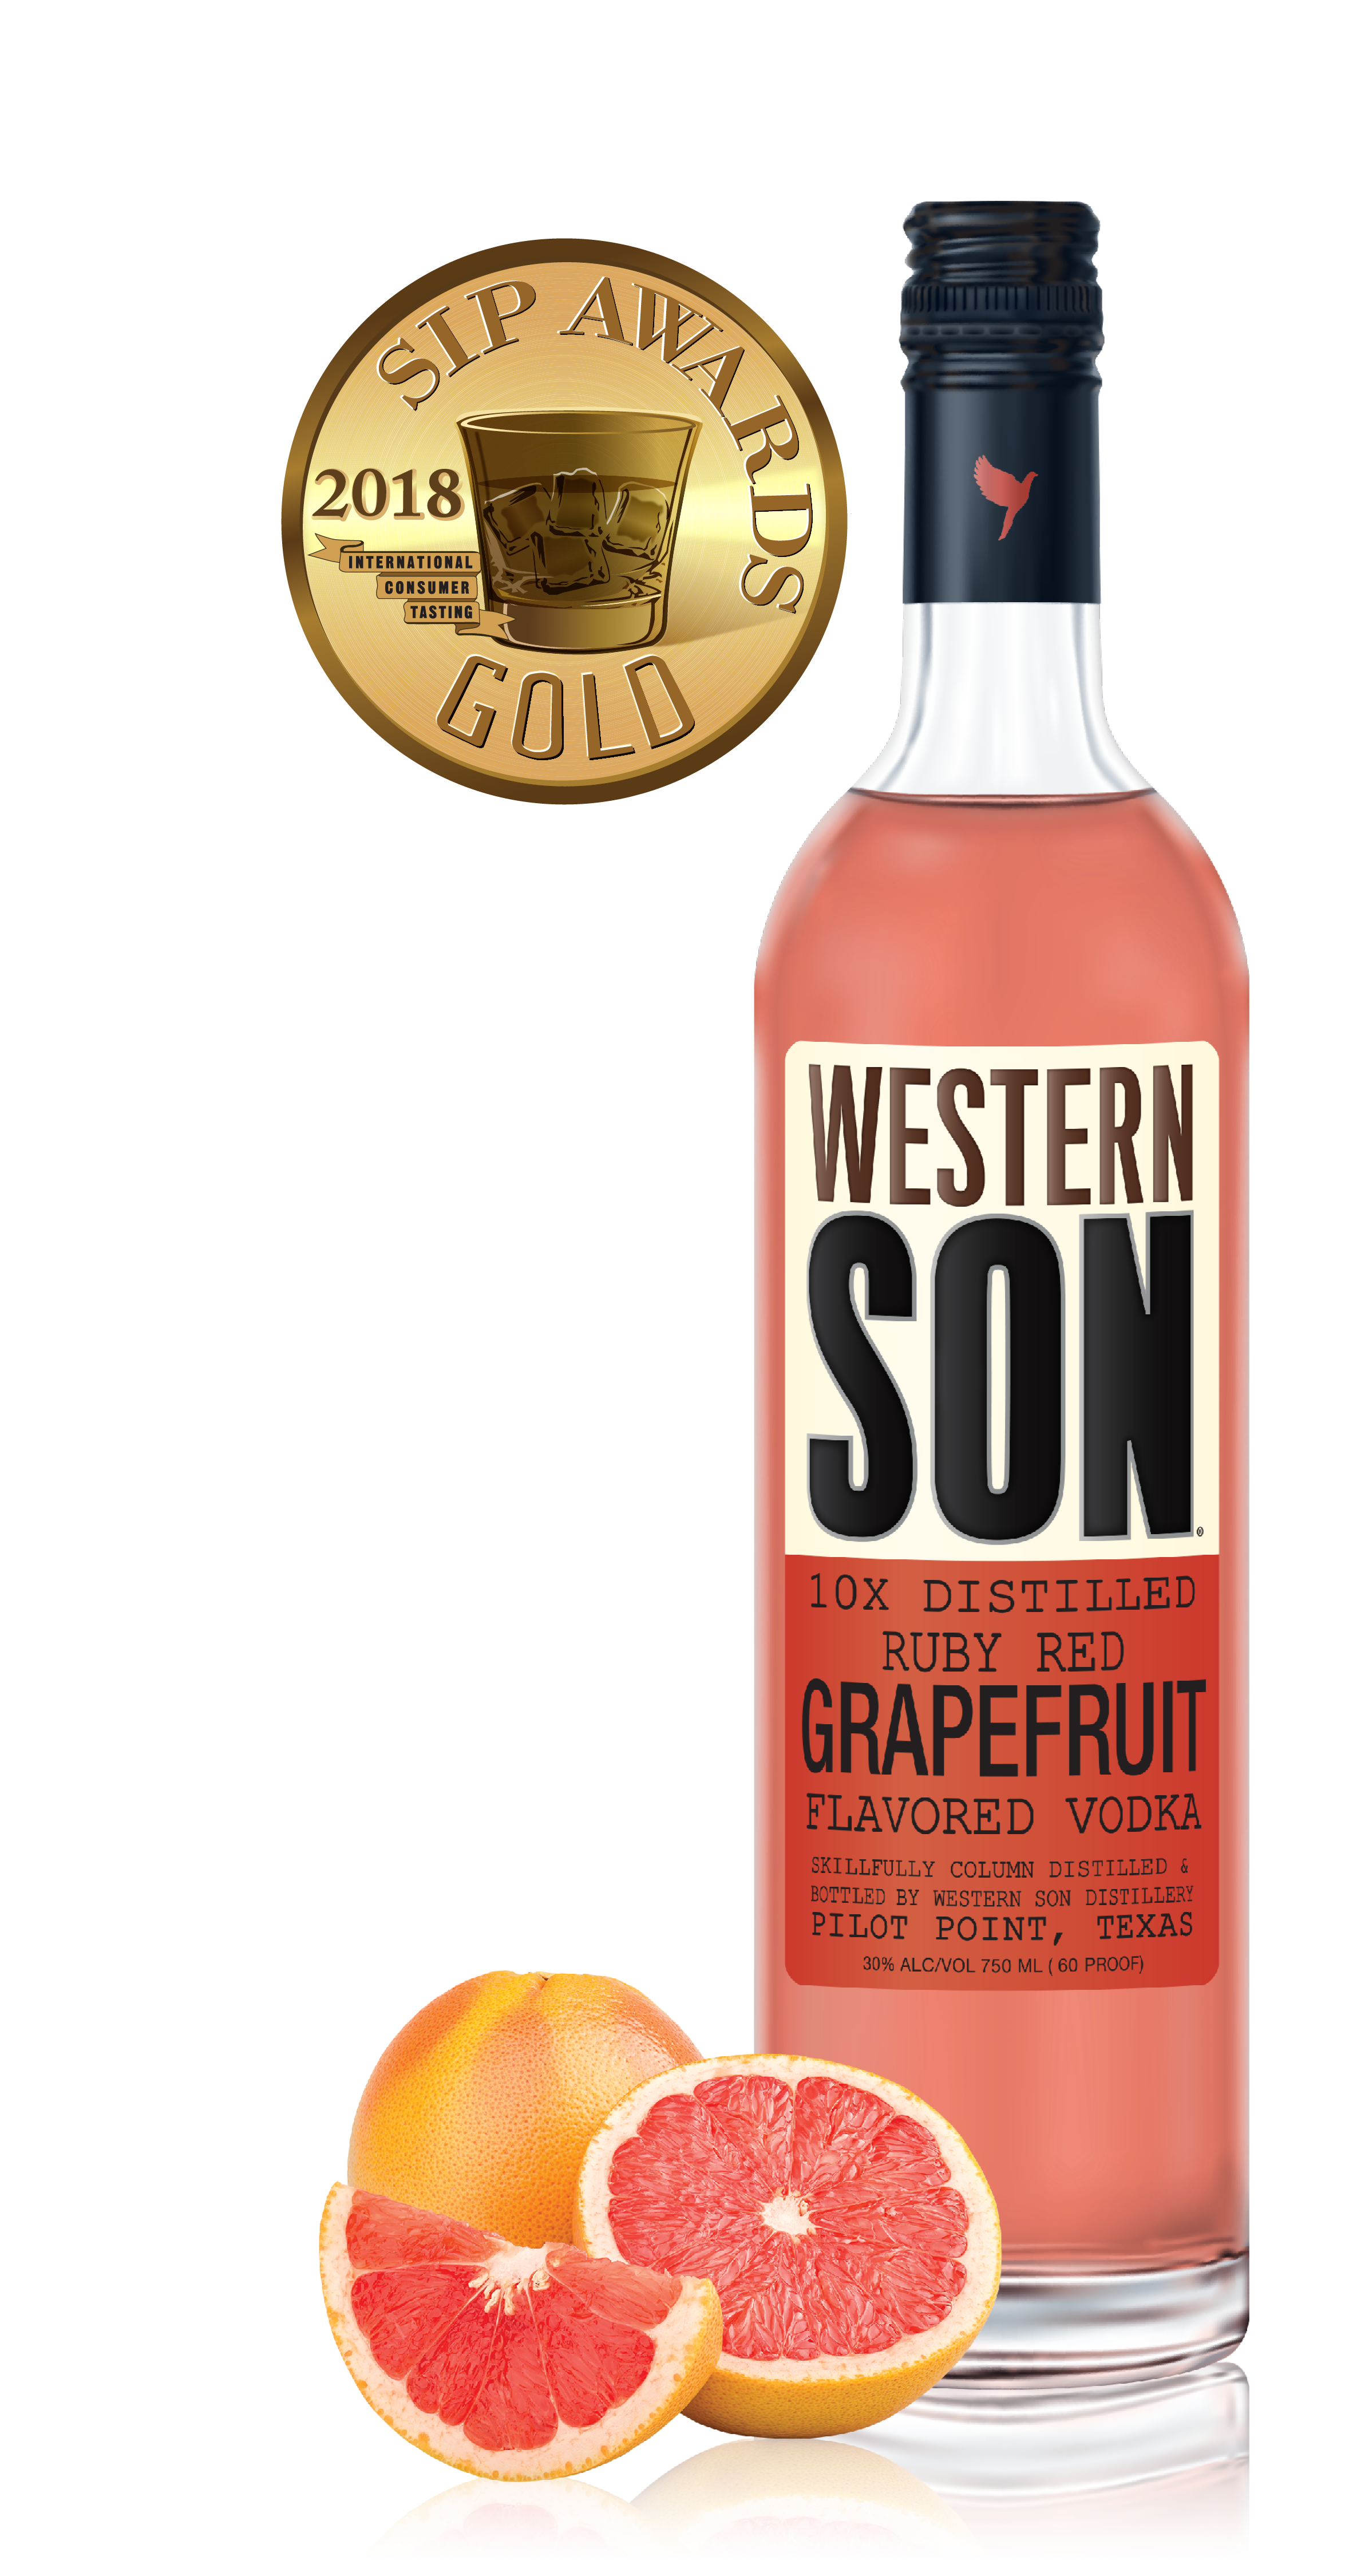 RUBY RED GRAPEFRUIT - Crisp, freshly picked ruby red grapefruit. A sweet and juicy taste with a touch of acidity. Refreshing with a delicious citrus finish.Click for recipes